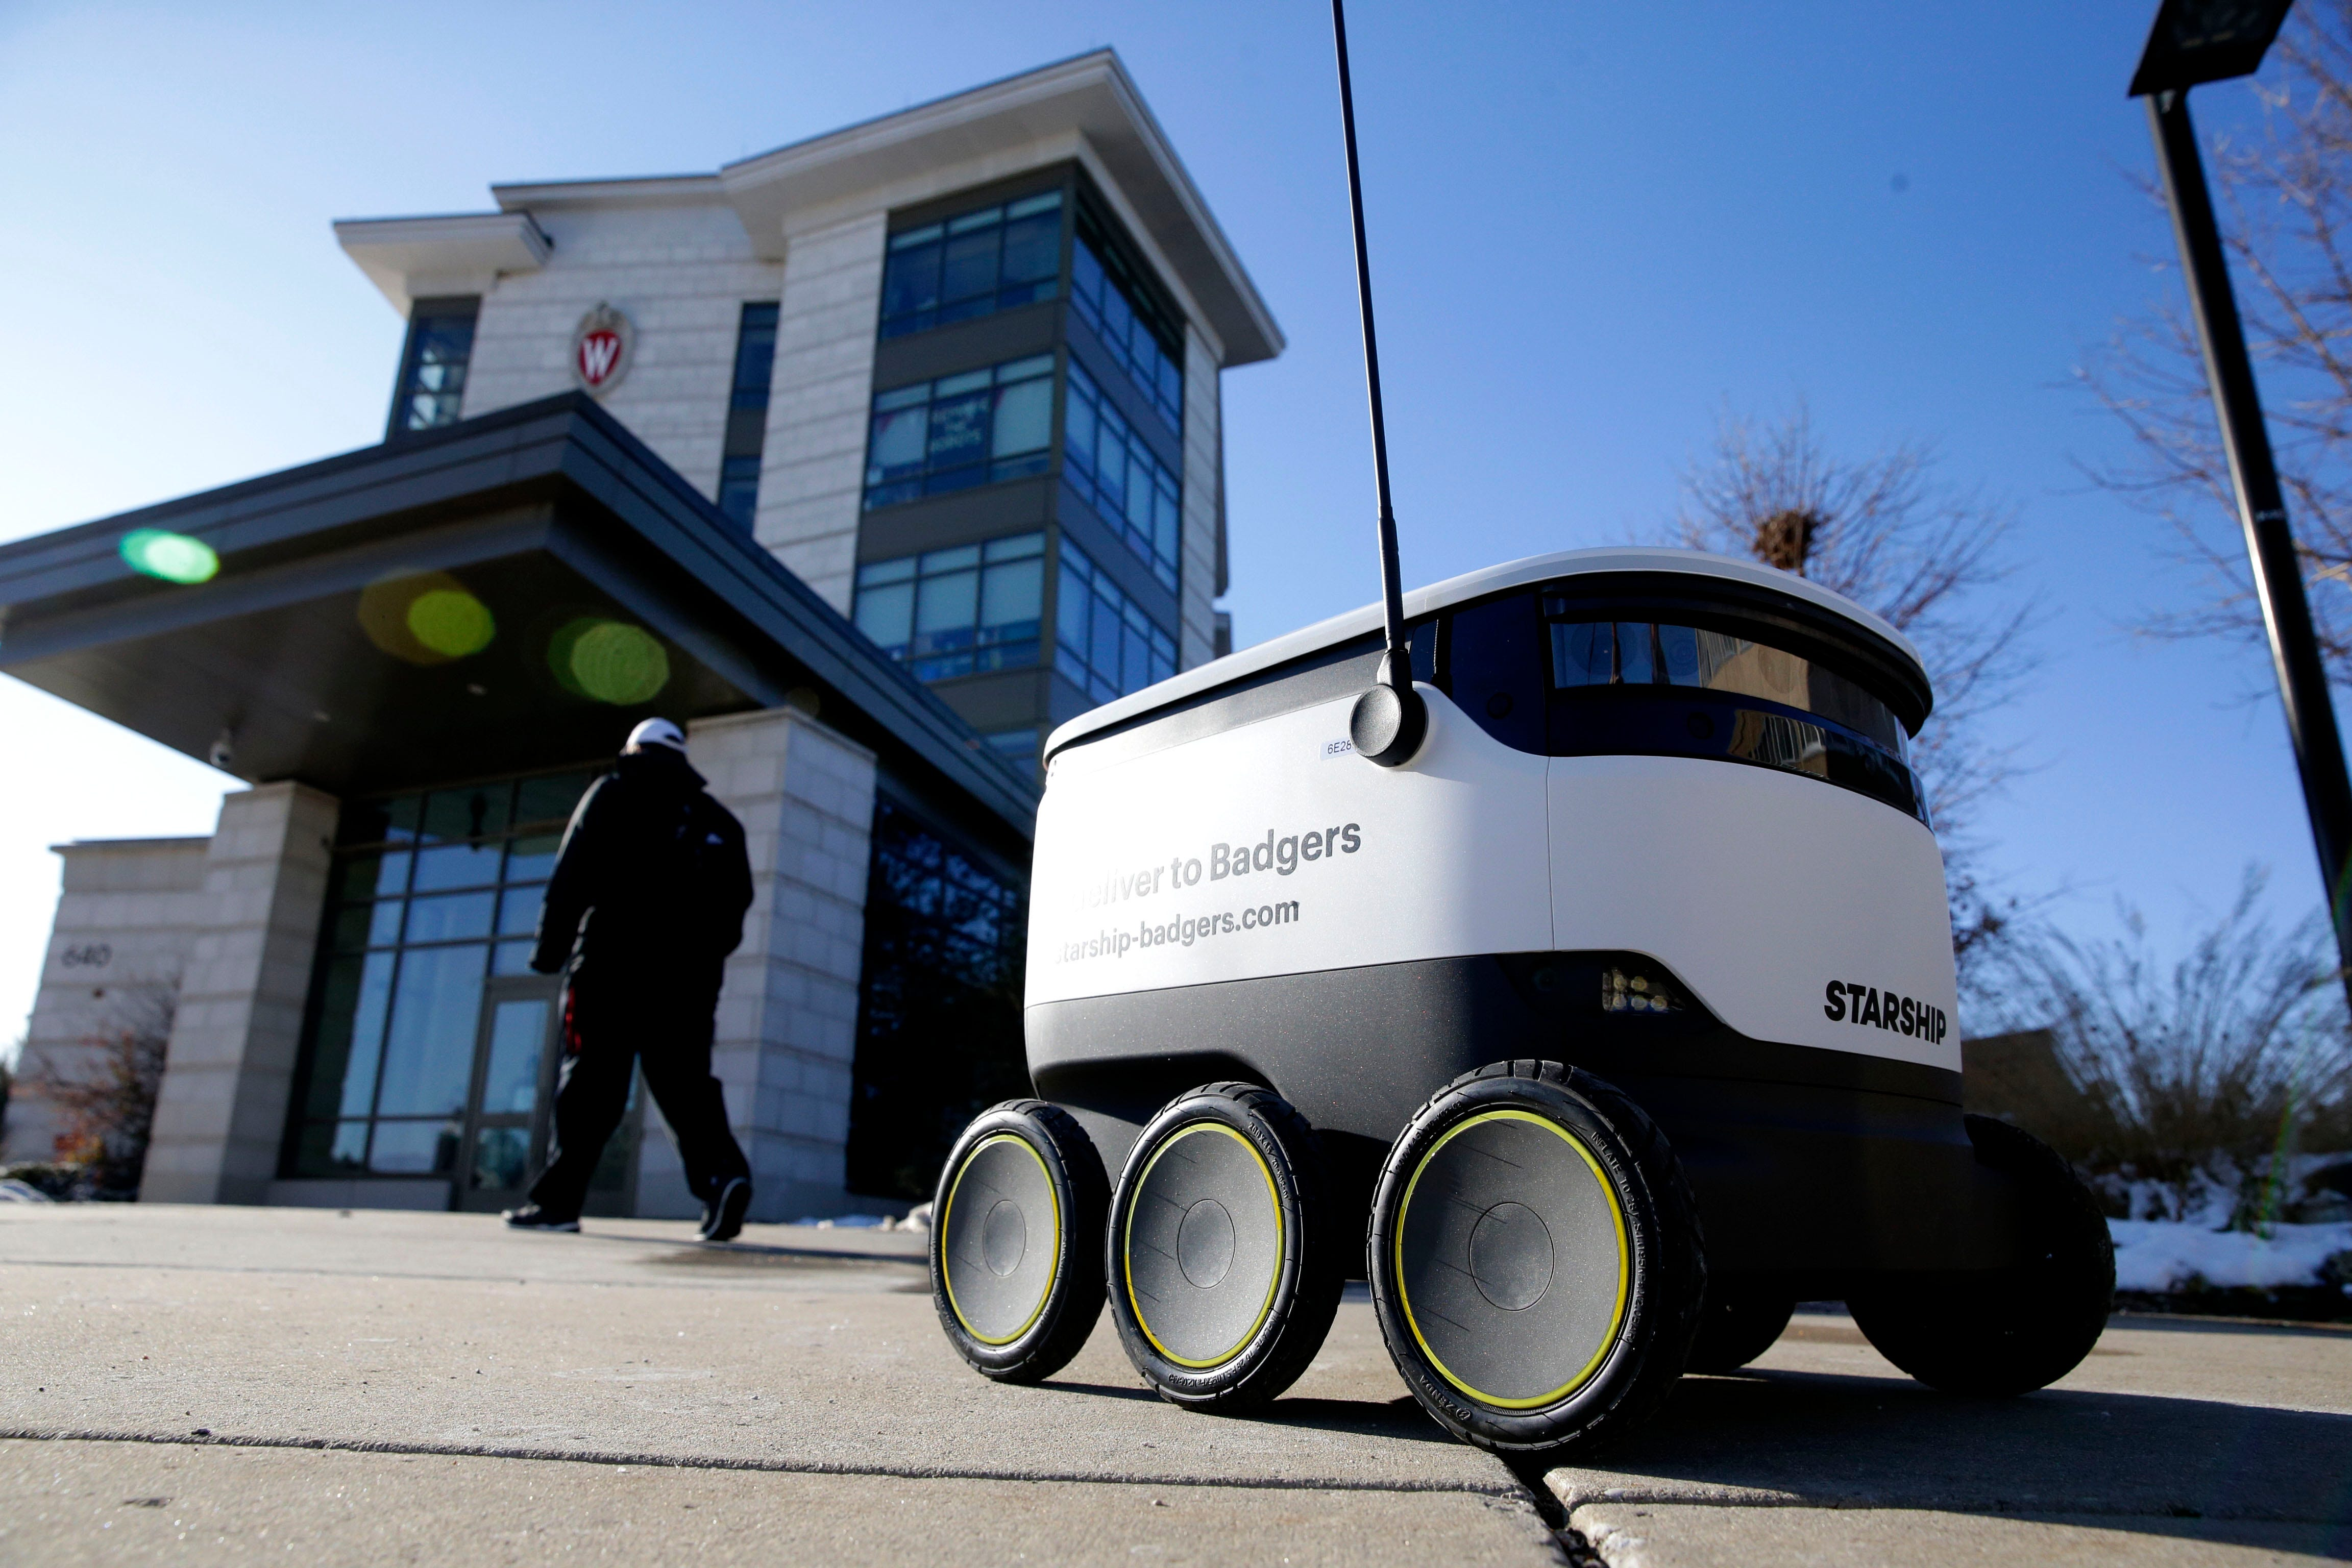 If you re a college student, the robots are coming for you. And they re bringing food